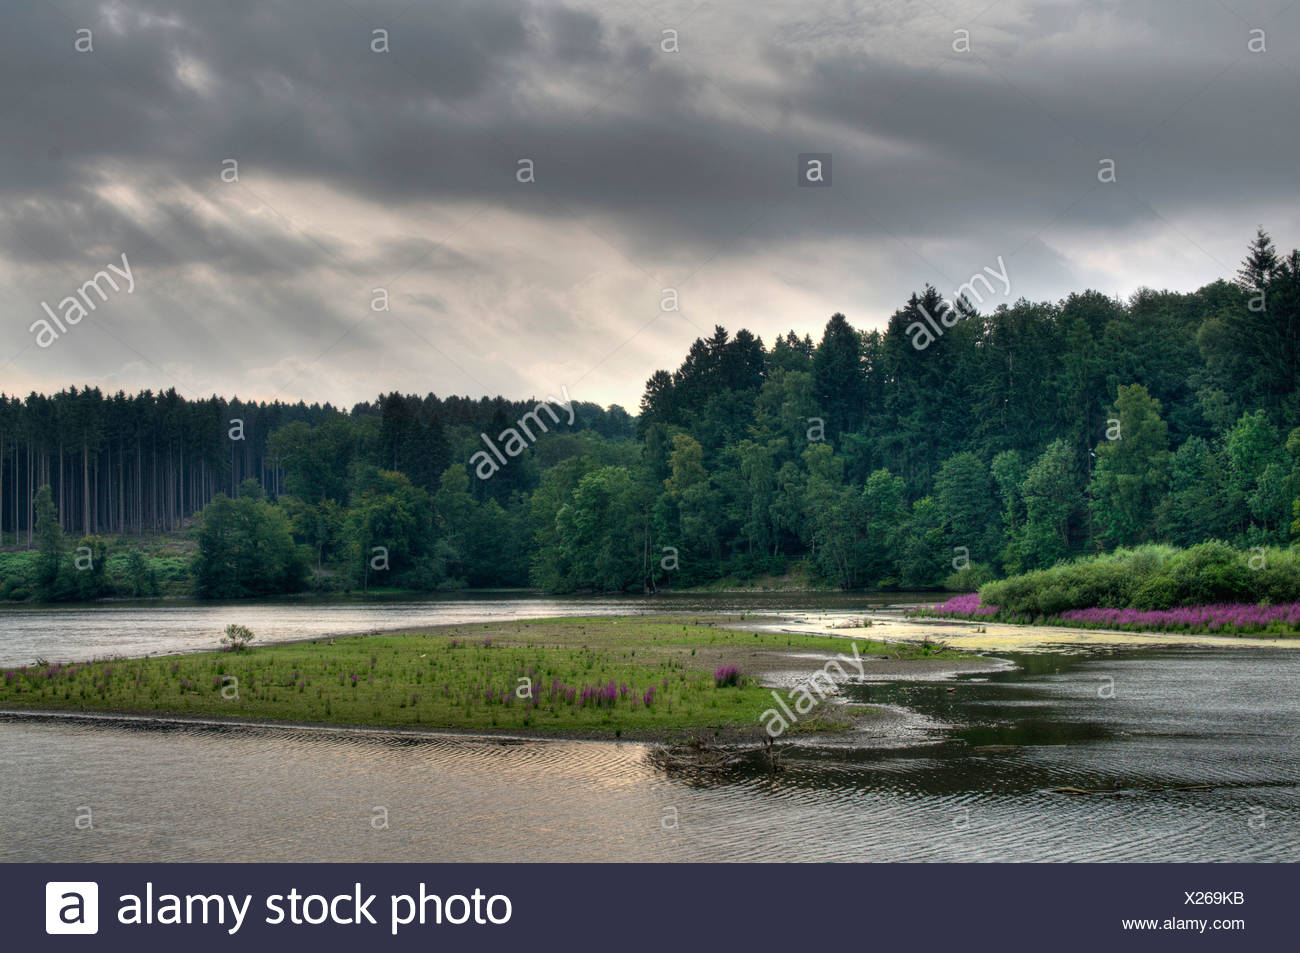 succession at a lake at midsummer low water, Germany, North Rhine-Westphalia, Moehnesee Stock Photo